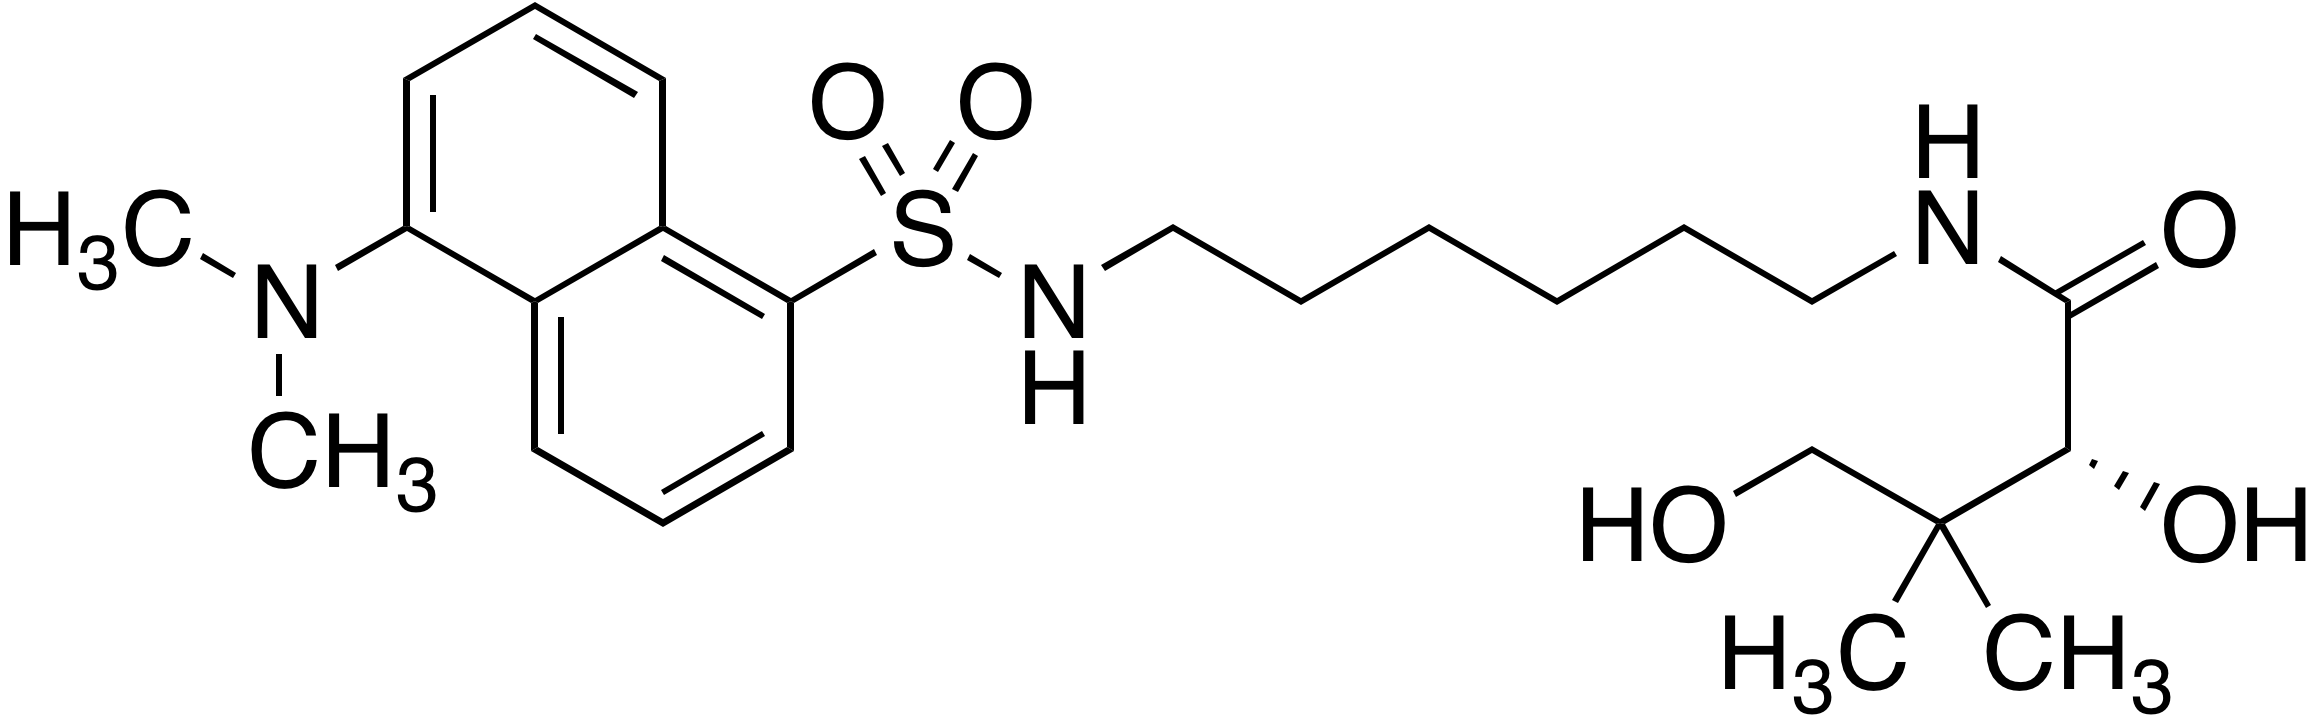 Dansyl-(R)-N-(6-aminohexyl)-2,4-dihydroxy-3,3-dimethylbutanamide